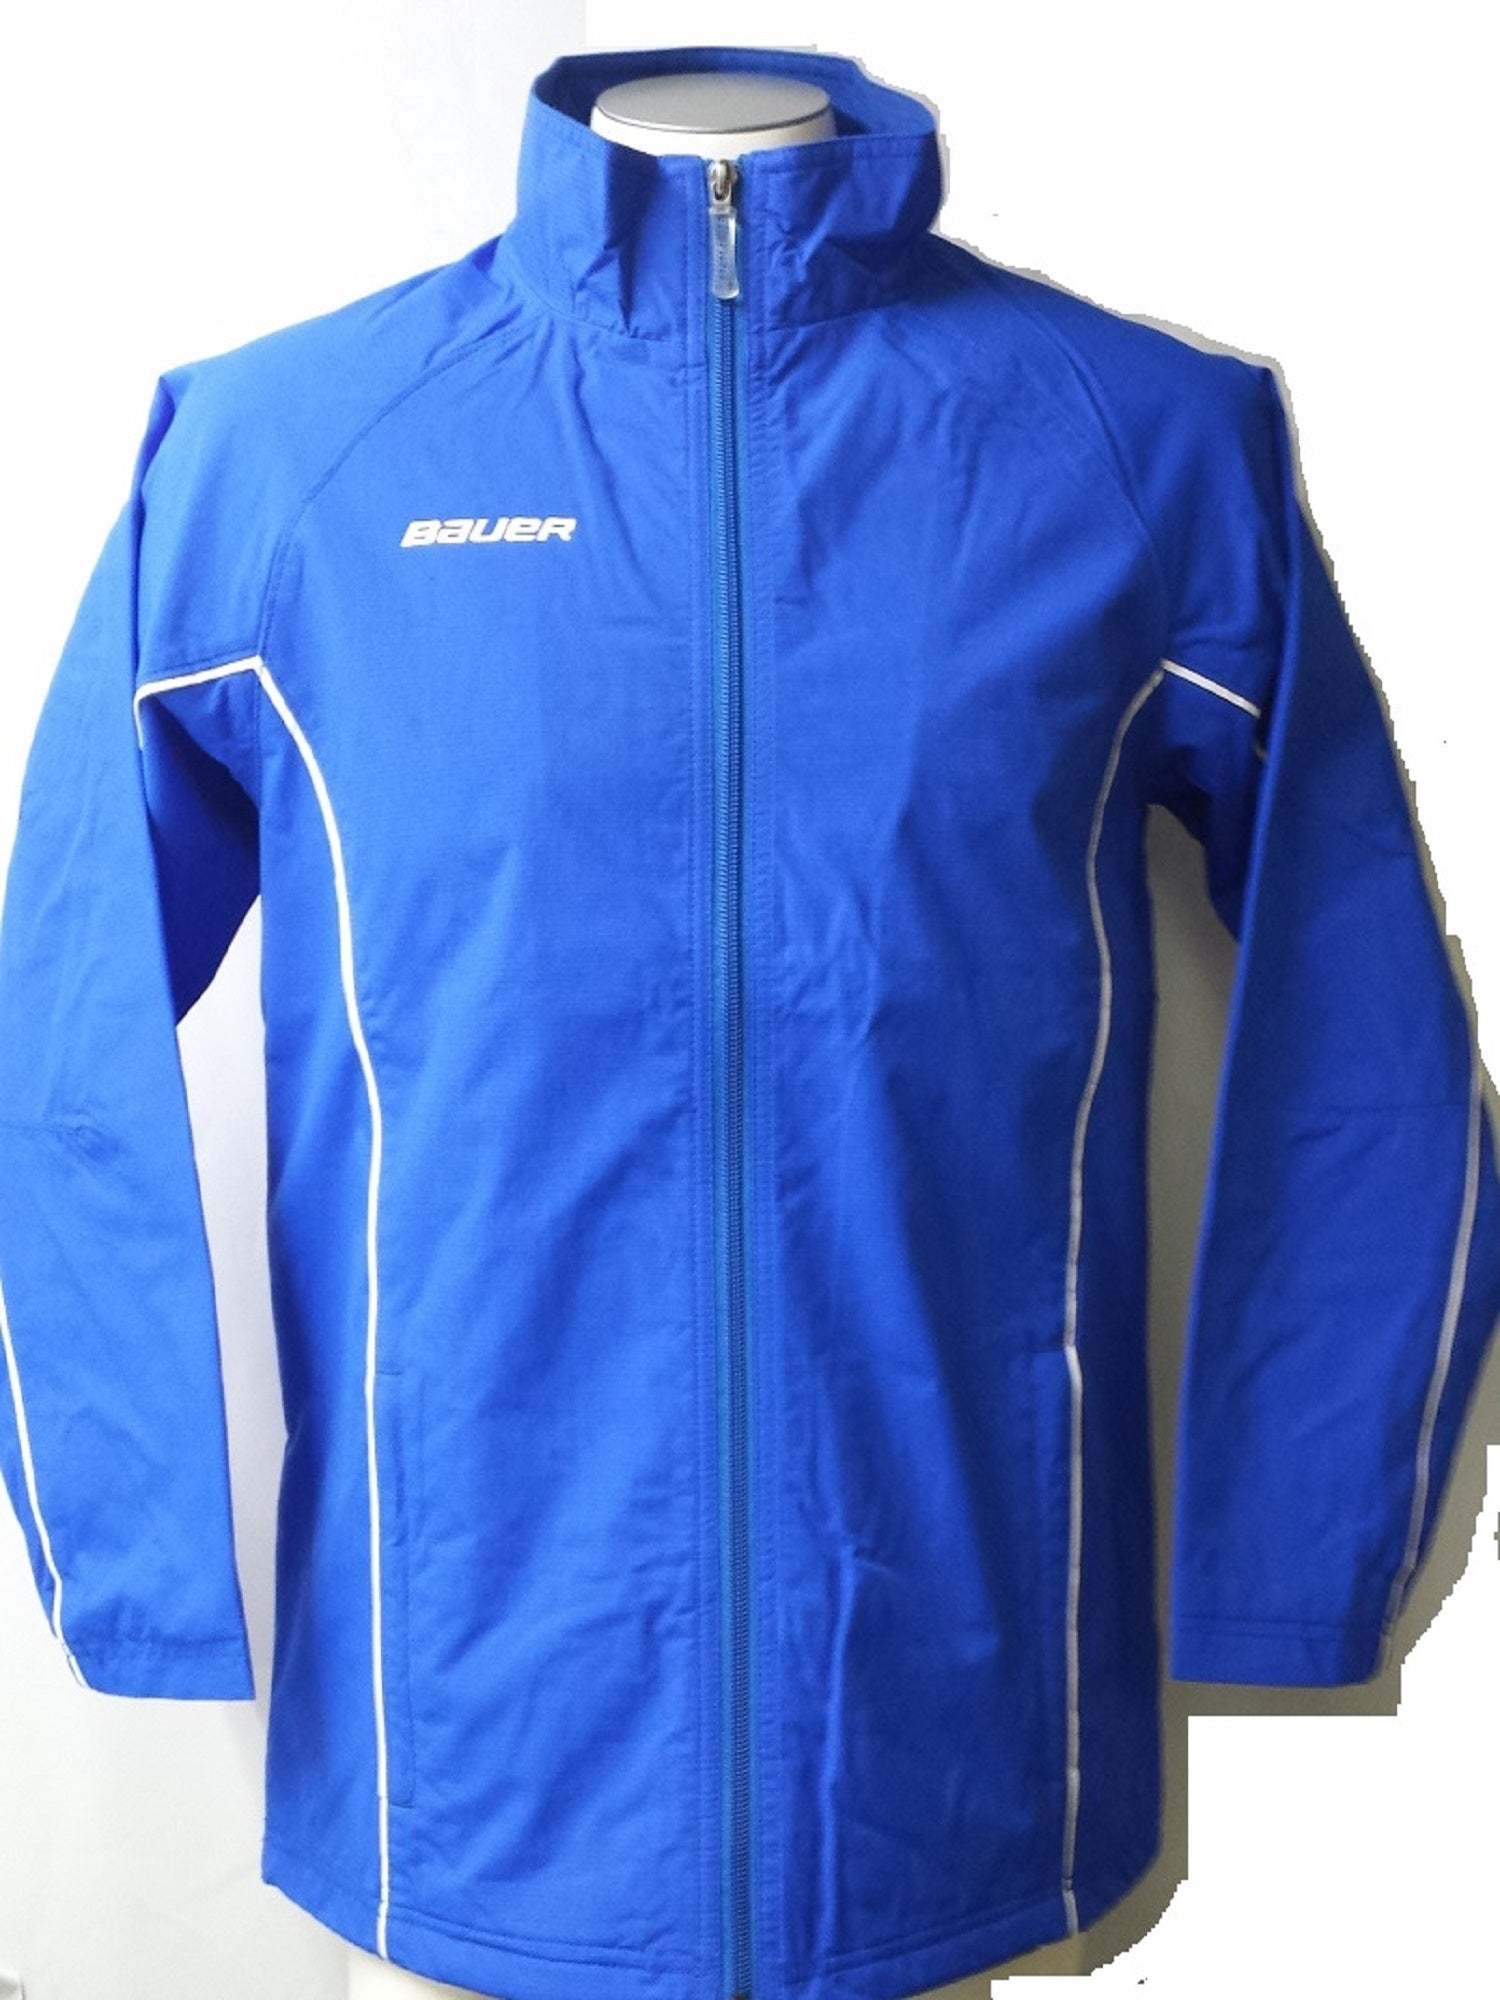 Bauer Youth Warm Up Jacket, Royal X-Small